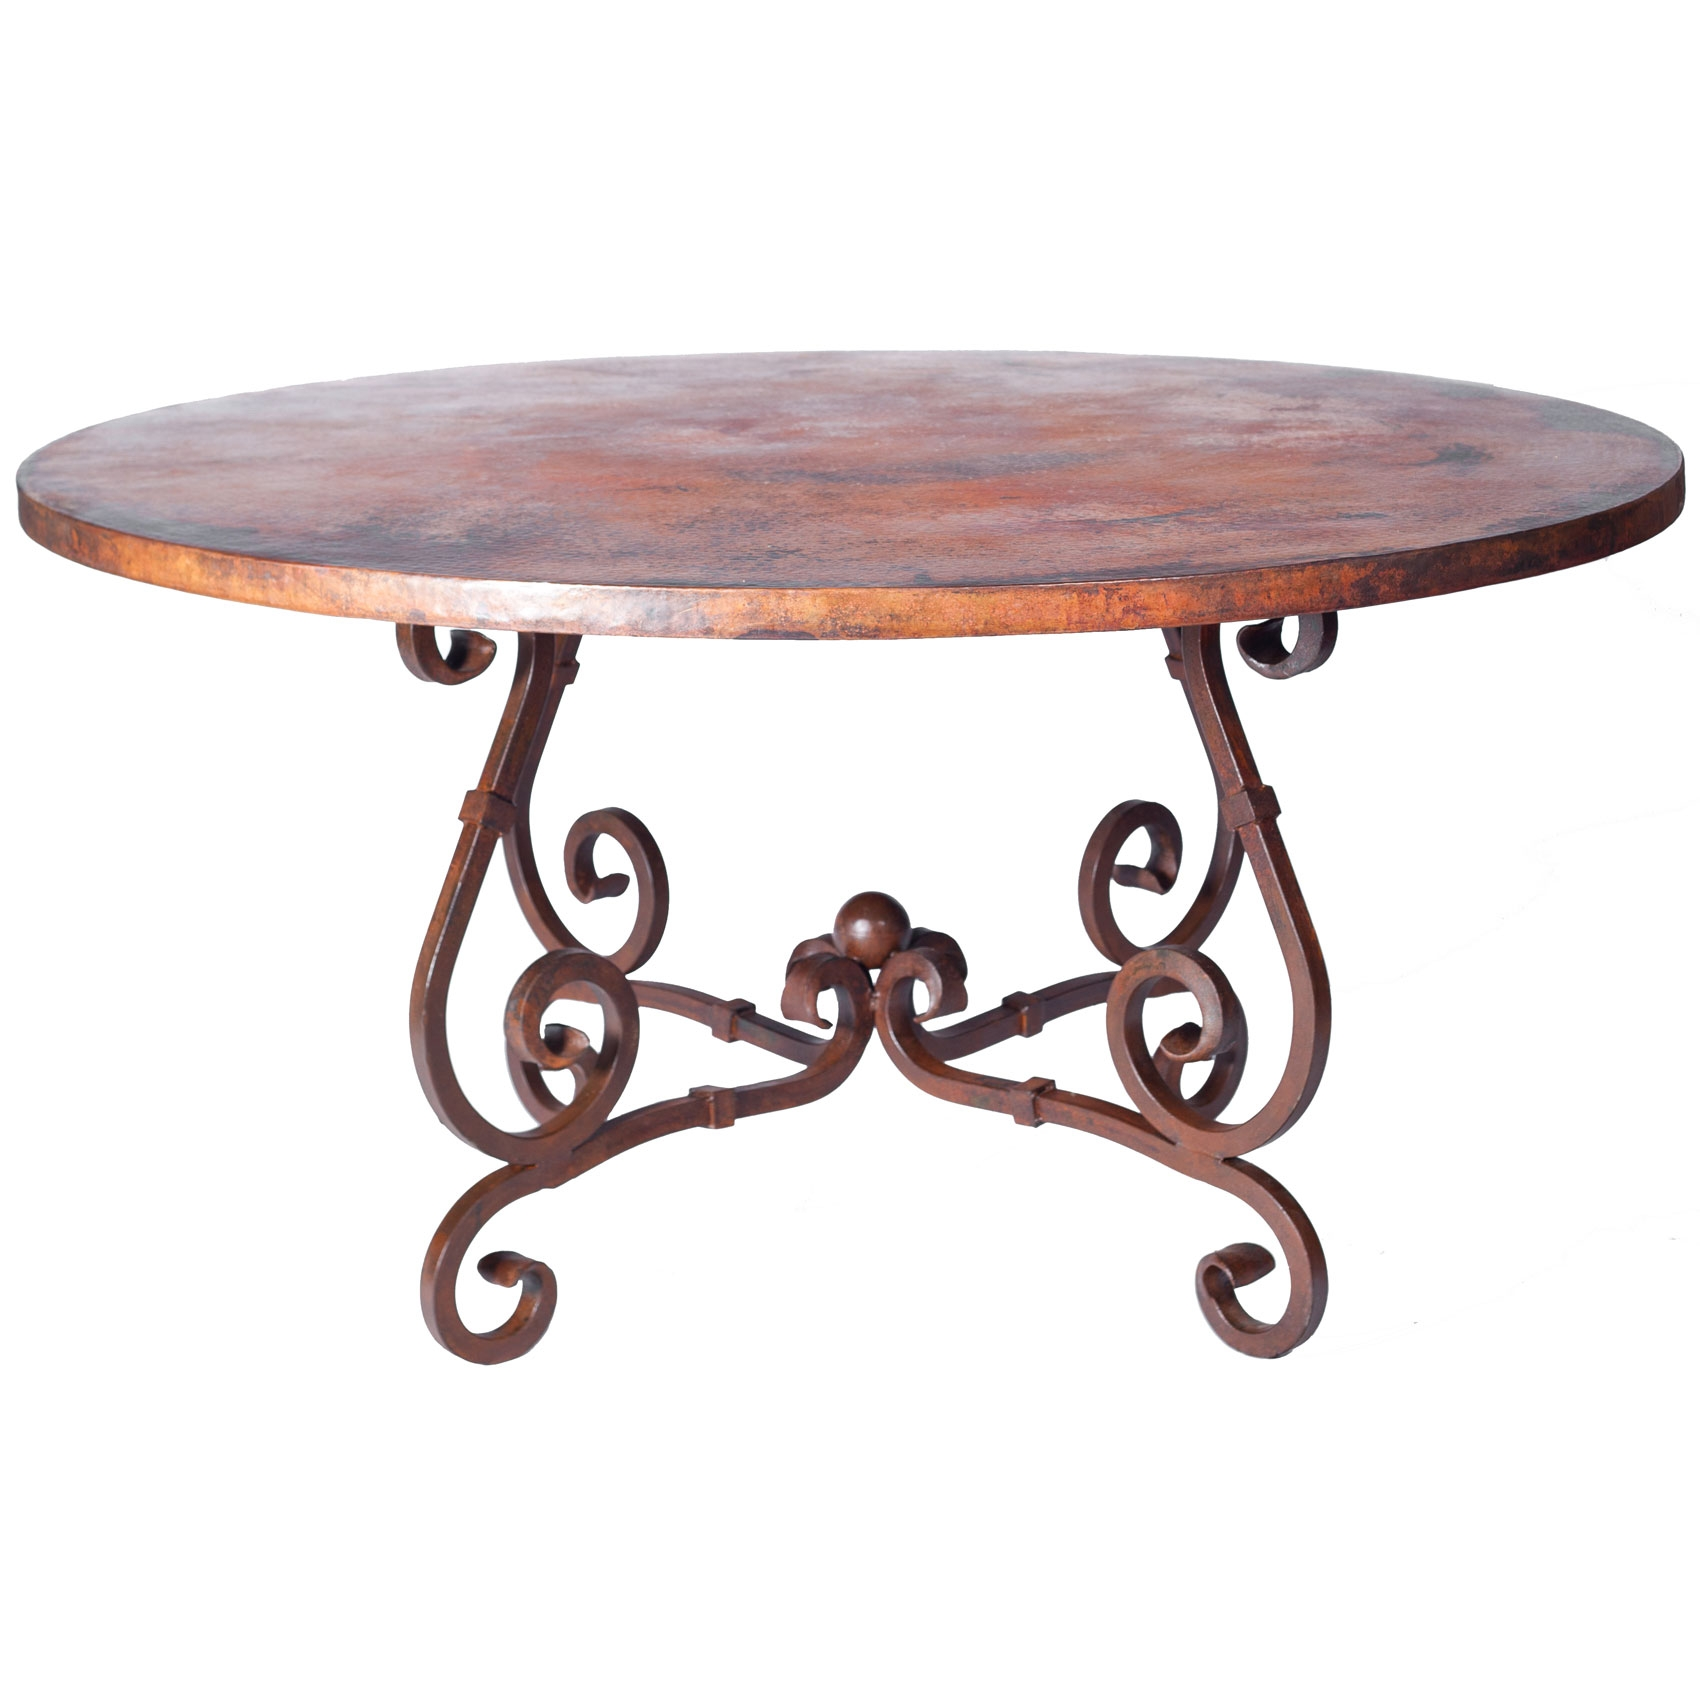 French Iron Dining Table with 72in Round Hammered Copper Top